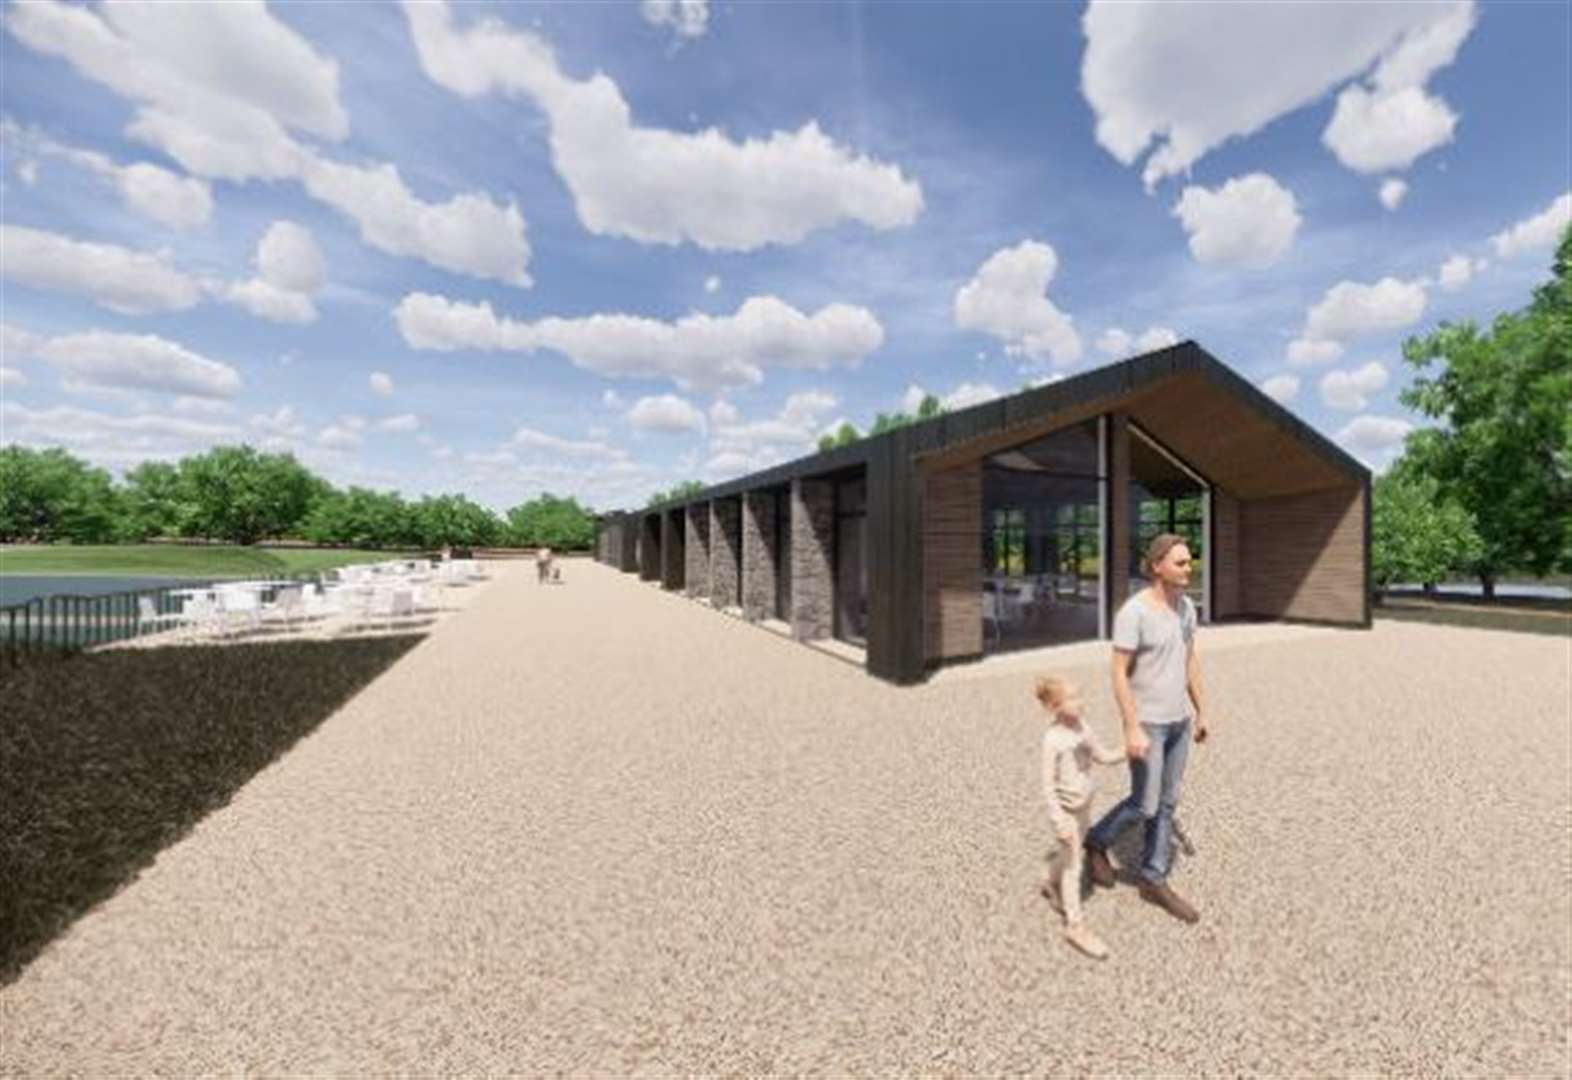 New café and visitor centre for park